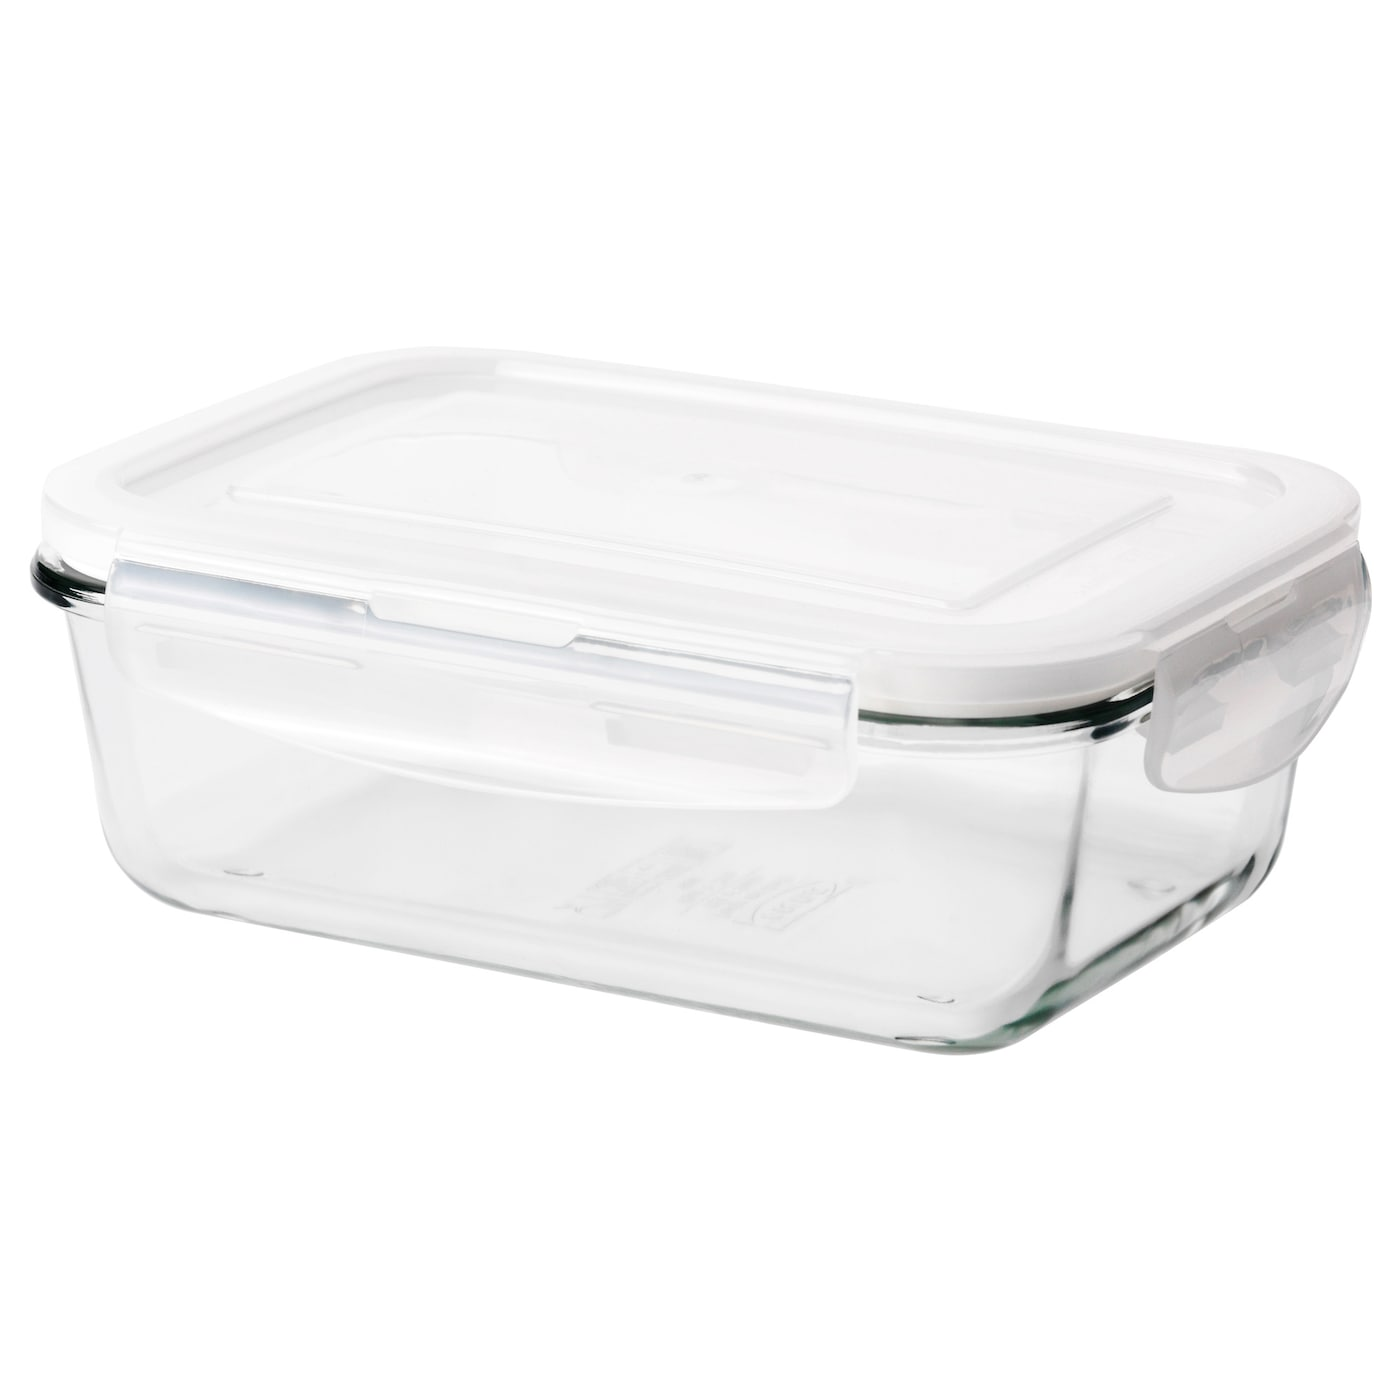 f rtrolig food container clear glass 13x19x7 cm ikea